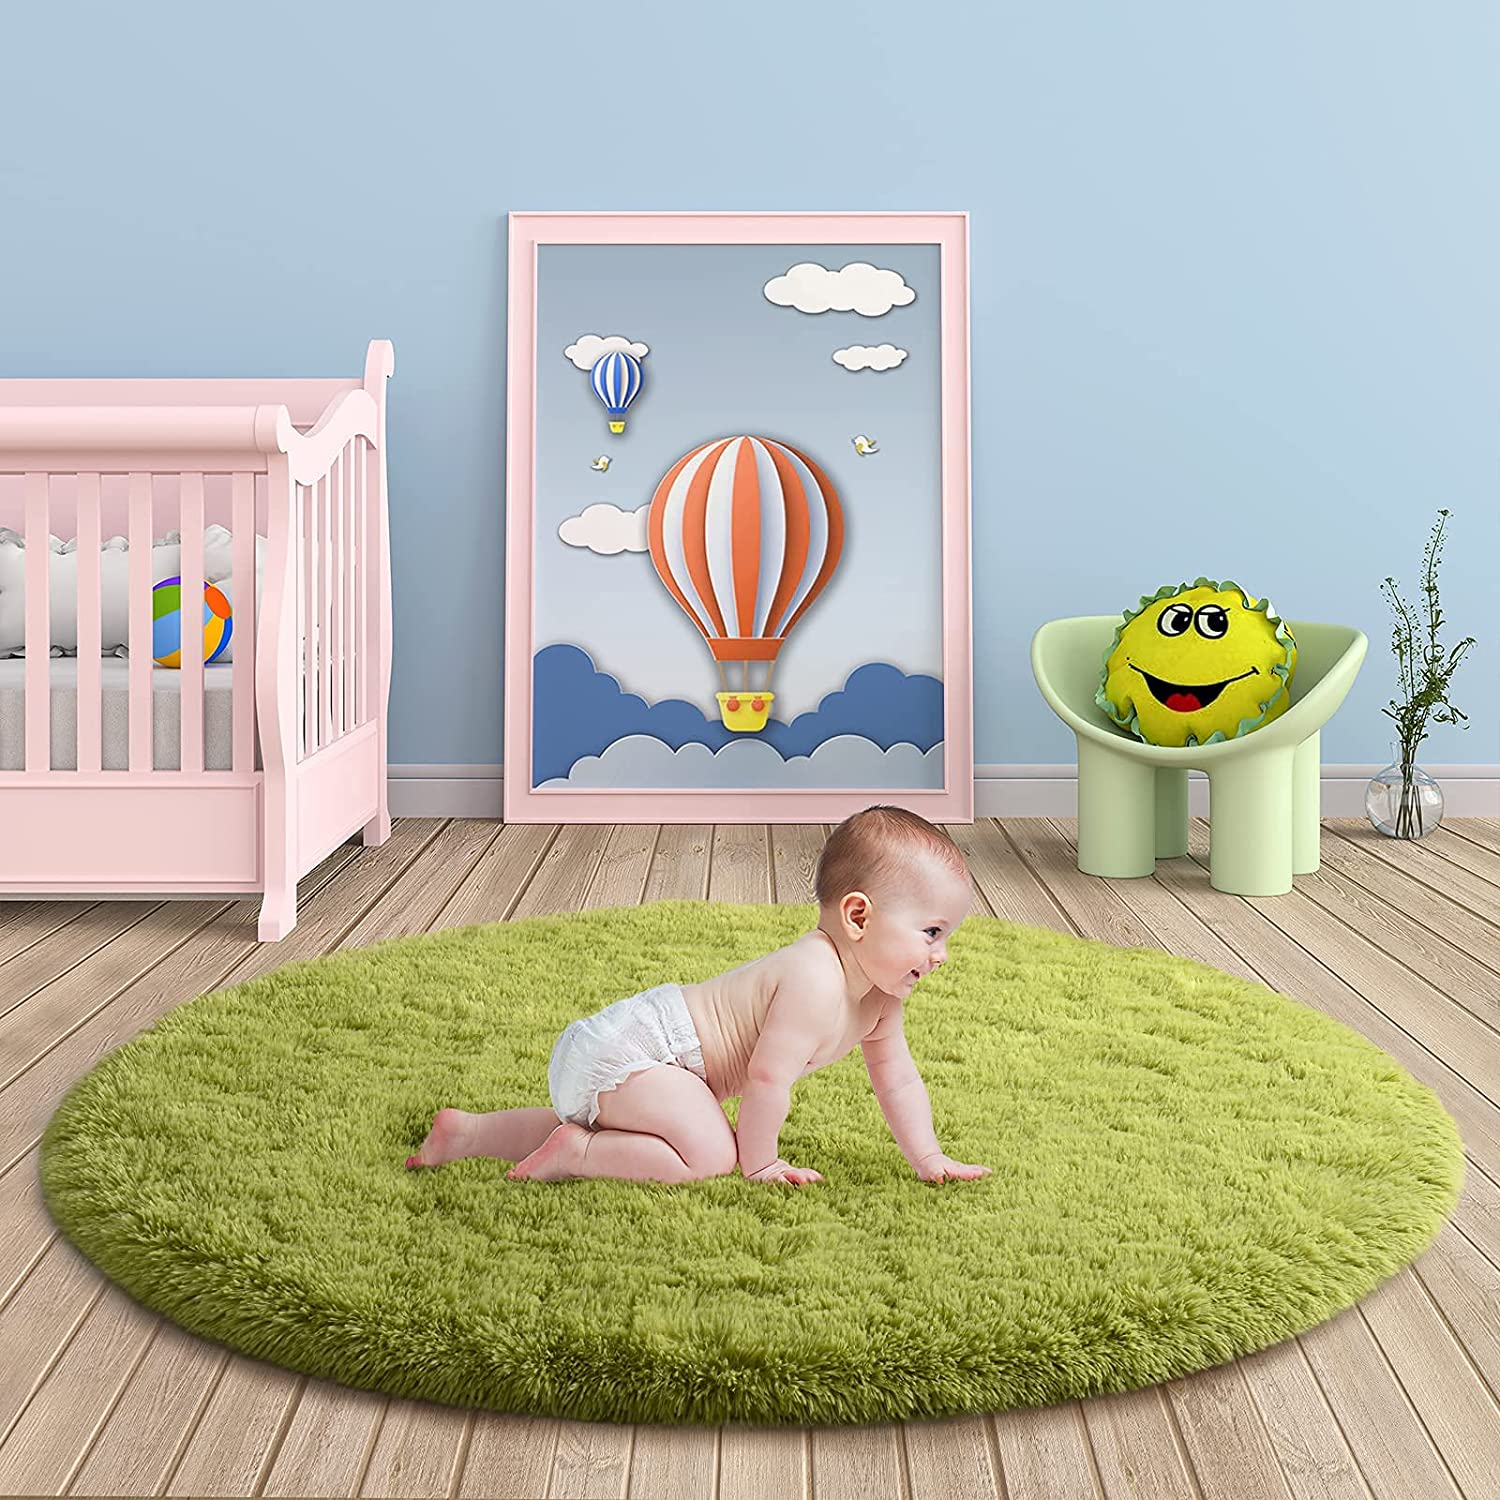 Merelax Green Round Rug for Kids Circula 4'x4' Shaggy Soft Rapid rise Room At the price